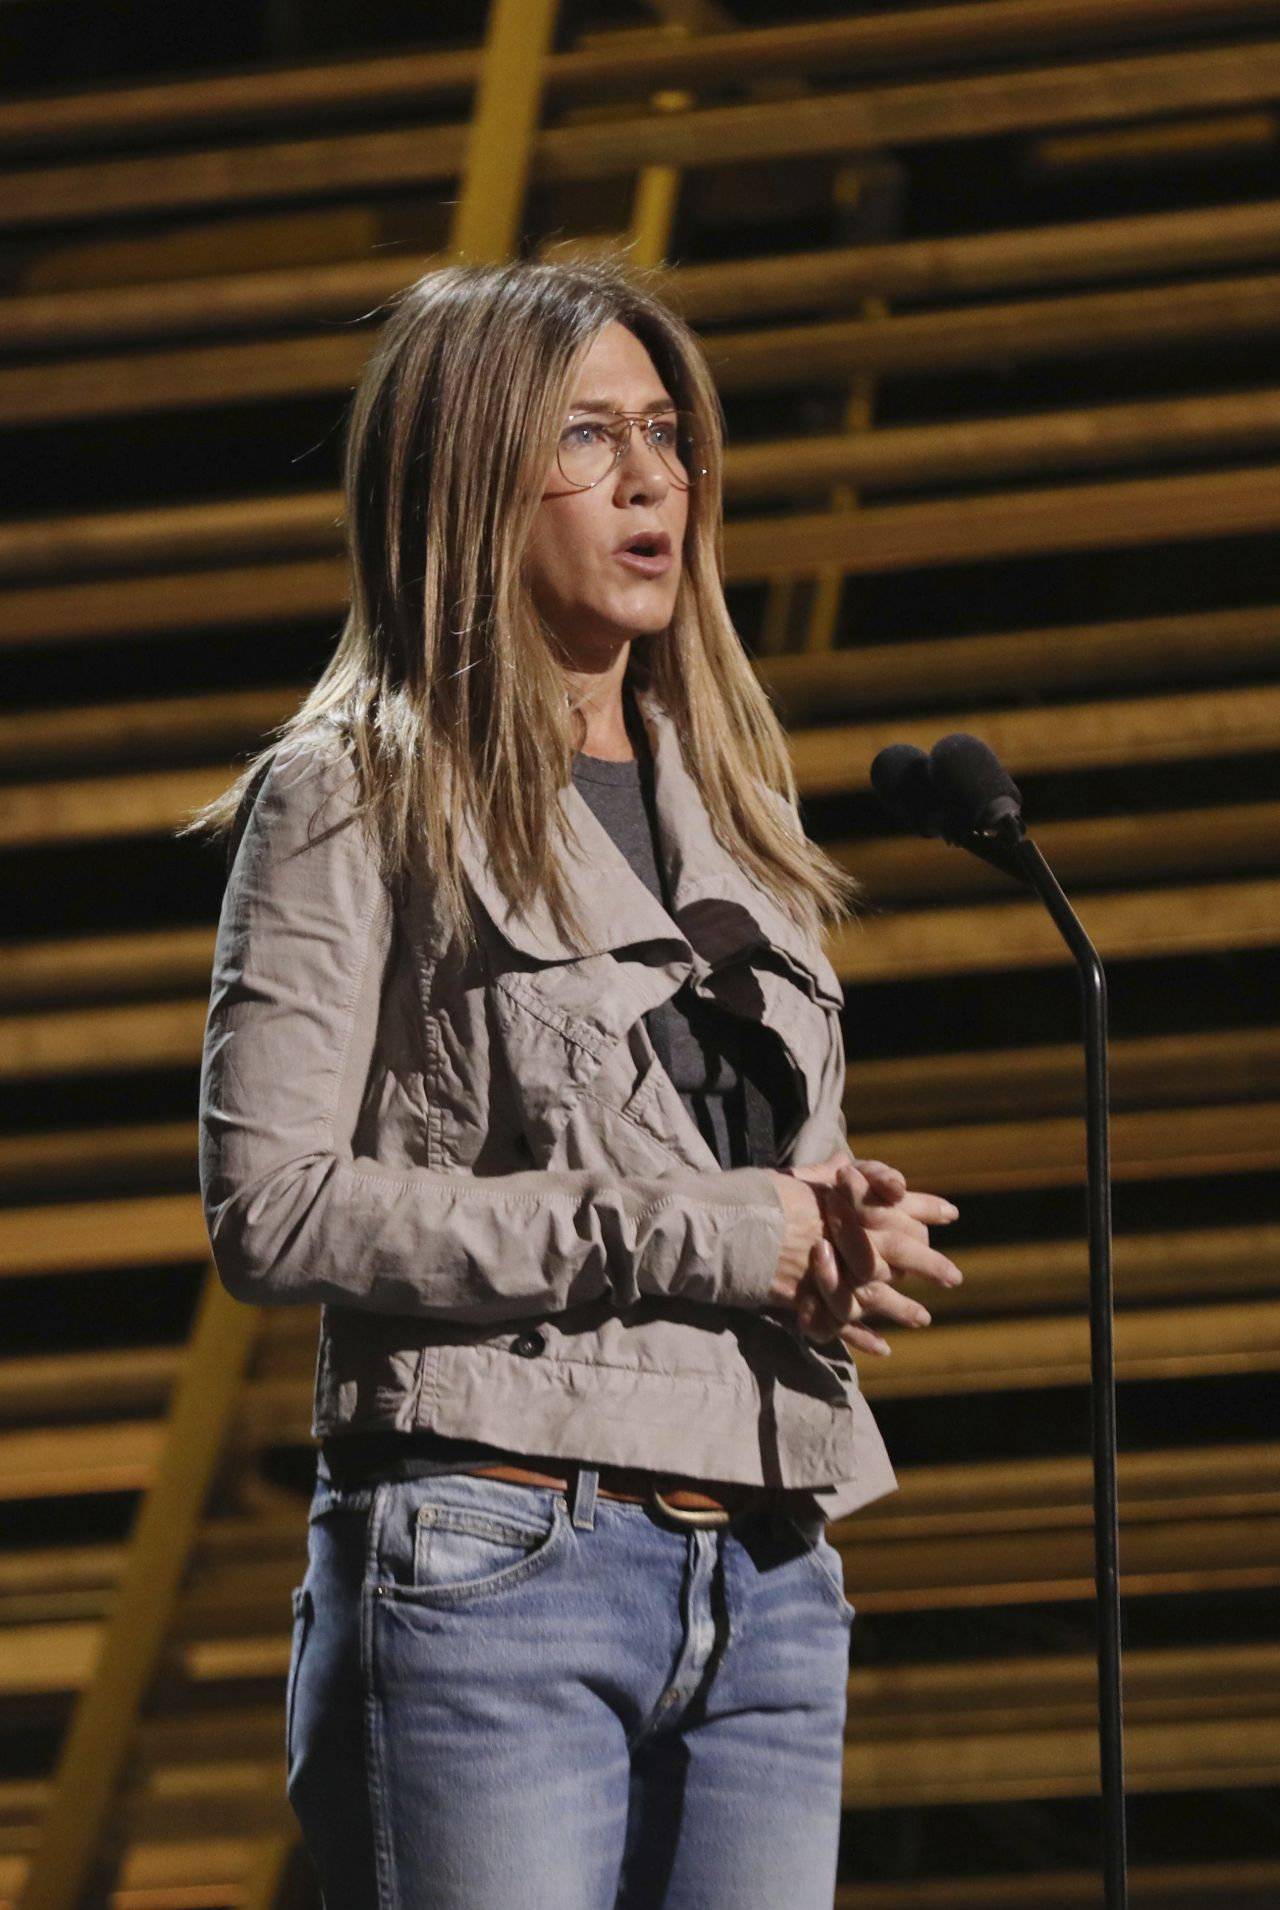 Jennifer Aniston Photo Gallery 1792 High Quality Pics Of